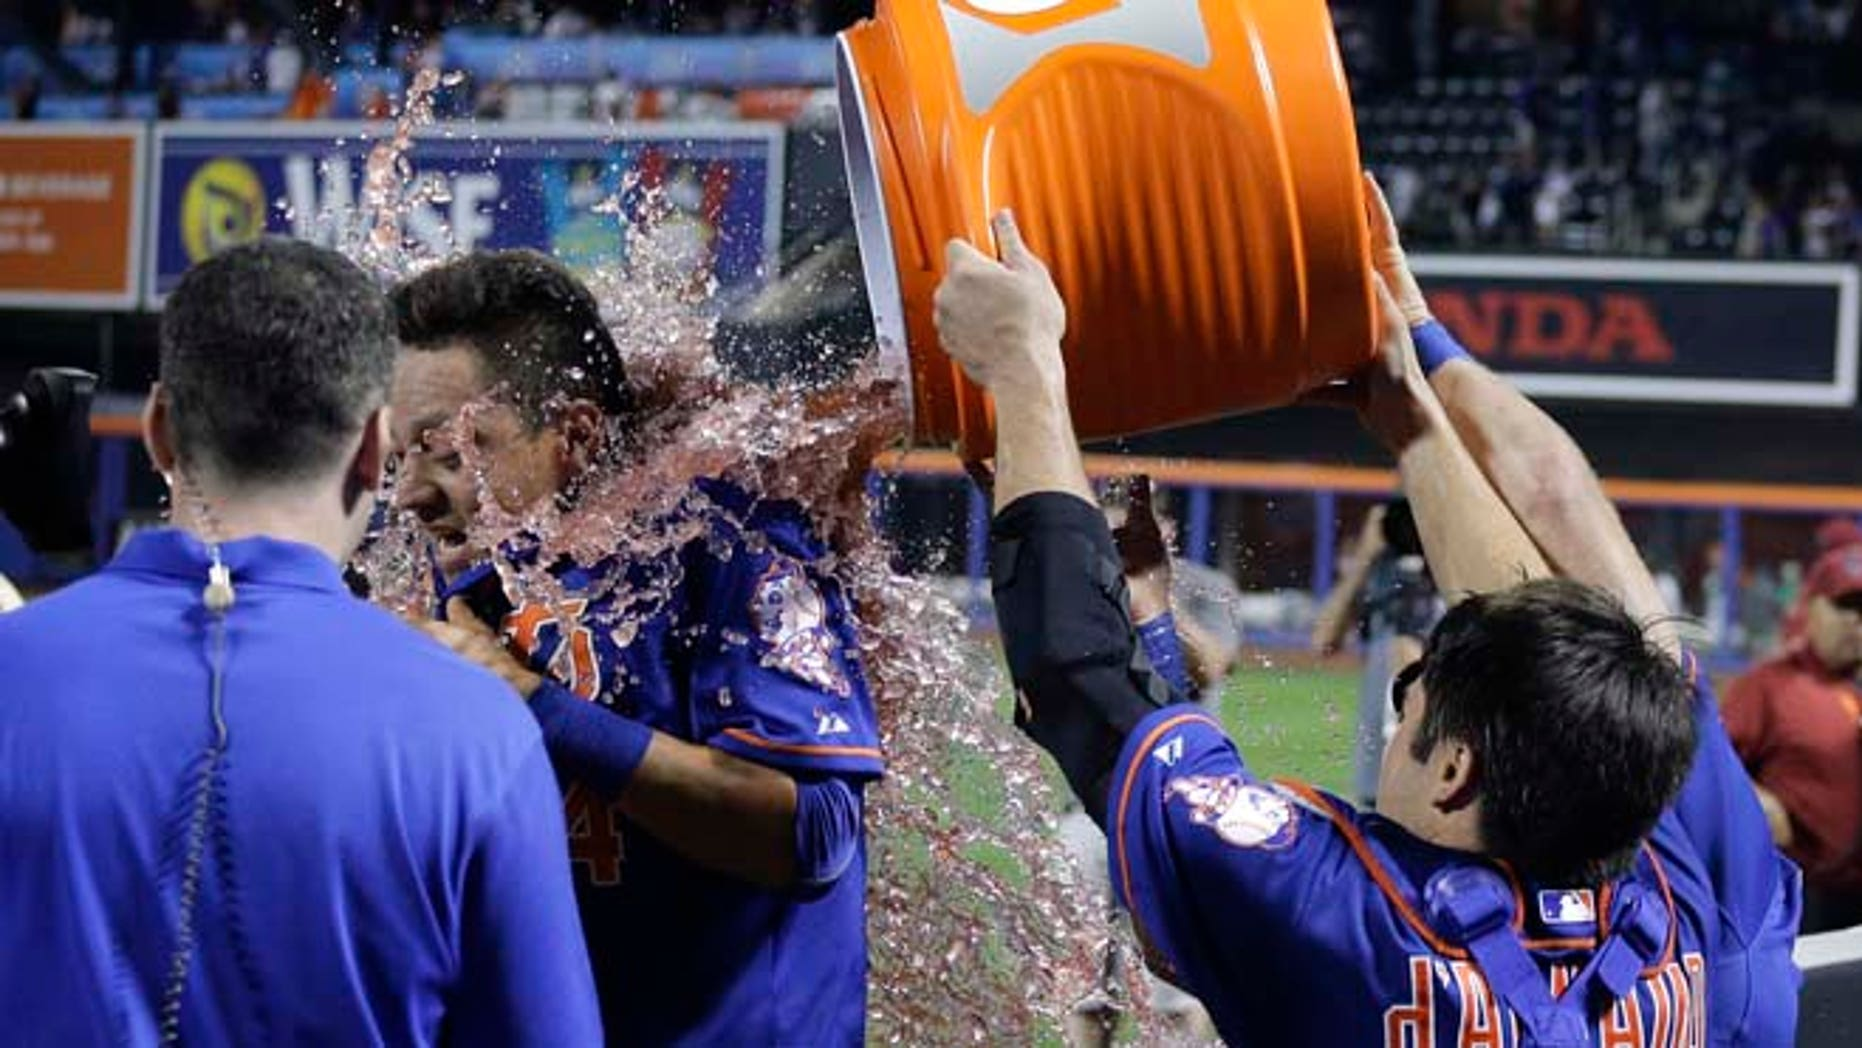 New York Mets' Wilmer Flores is doused by teammate Travis d' Arnaud and Kevin Plawecki after hitting a walk-off solo home run in the 1th inning of a baseball game to beat the Washington Nationals 2-1.